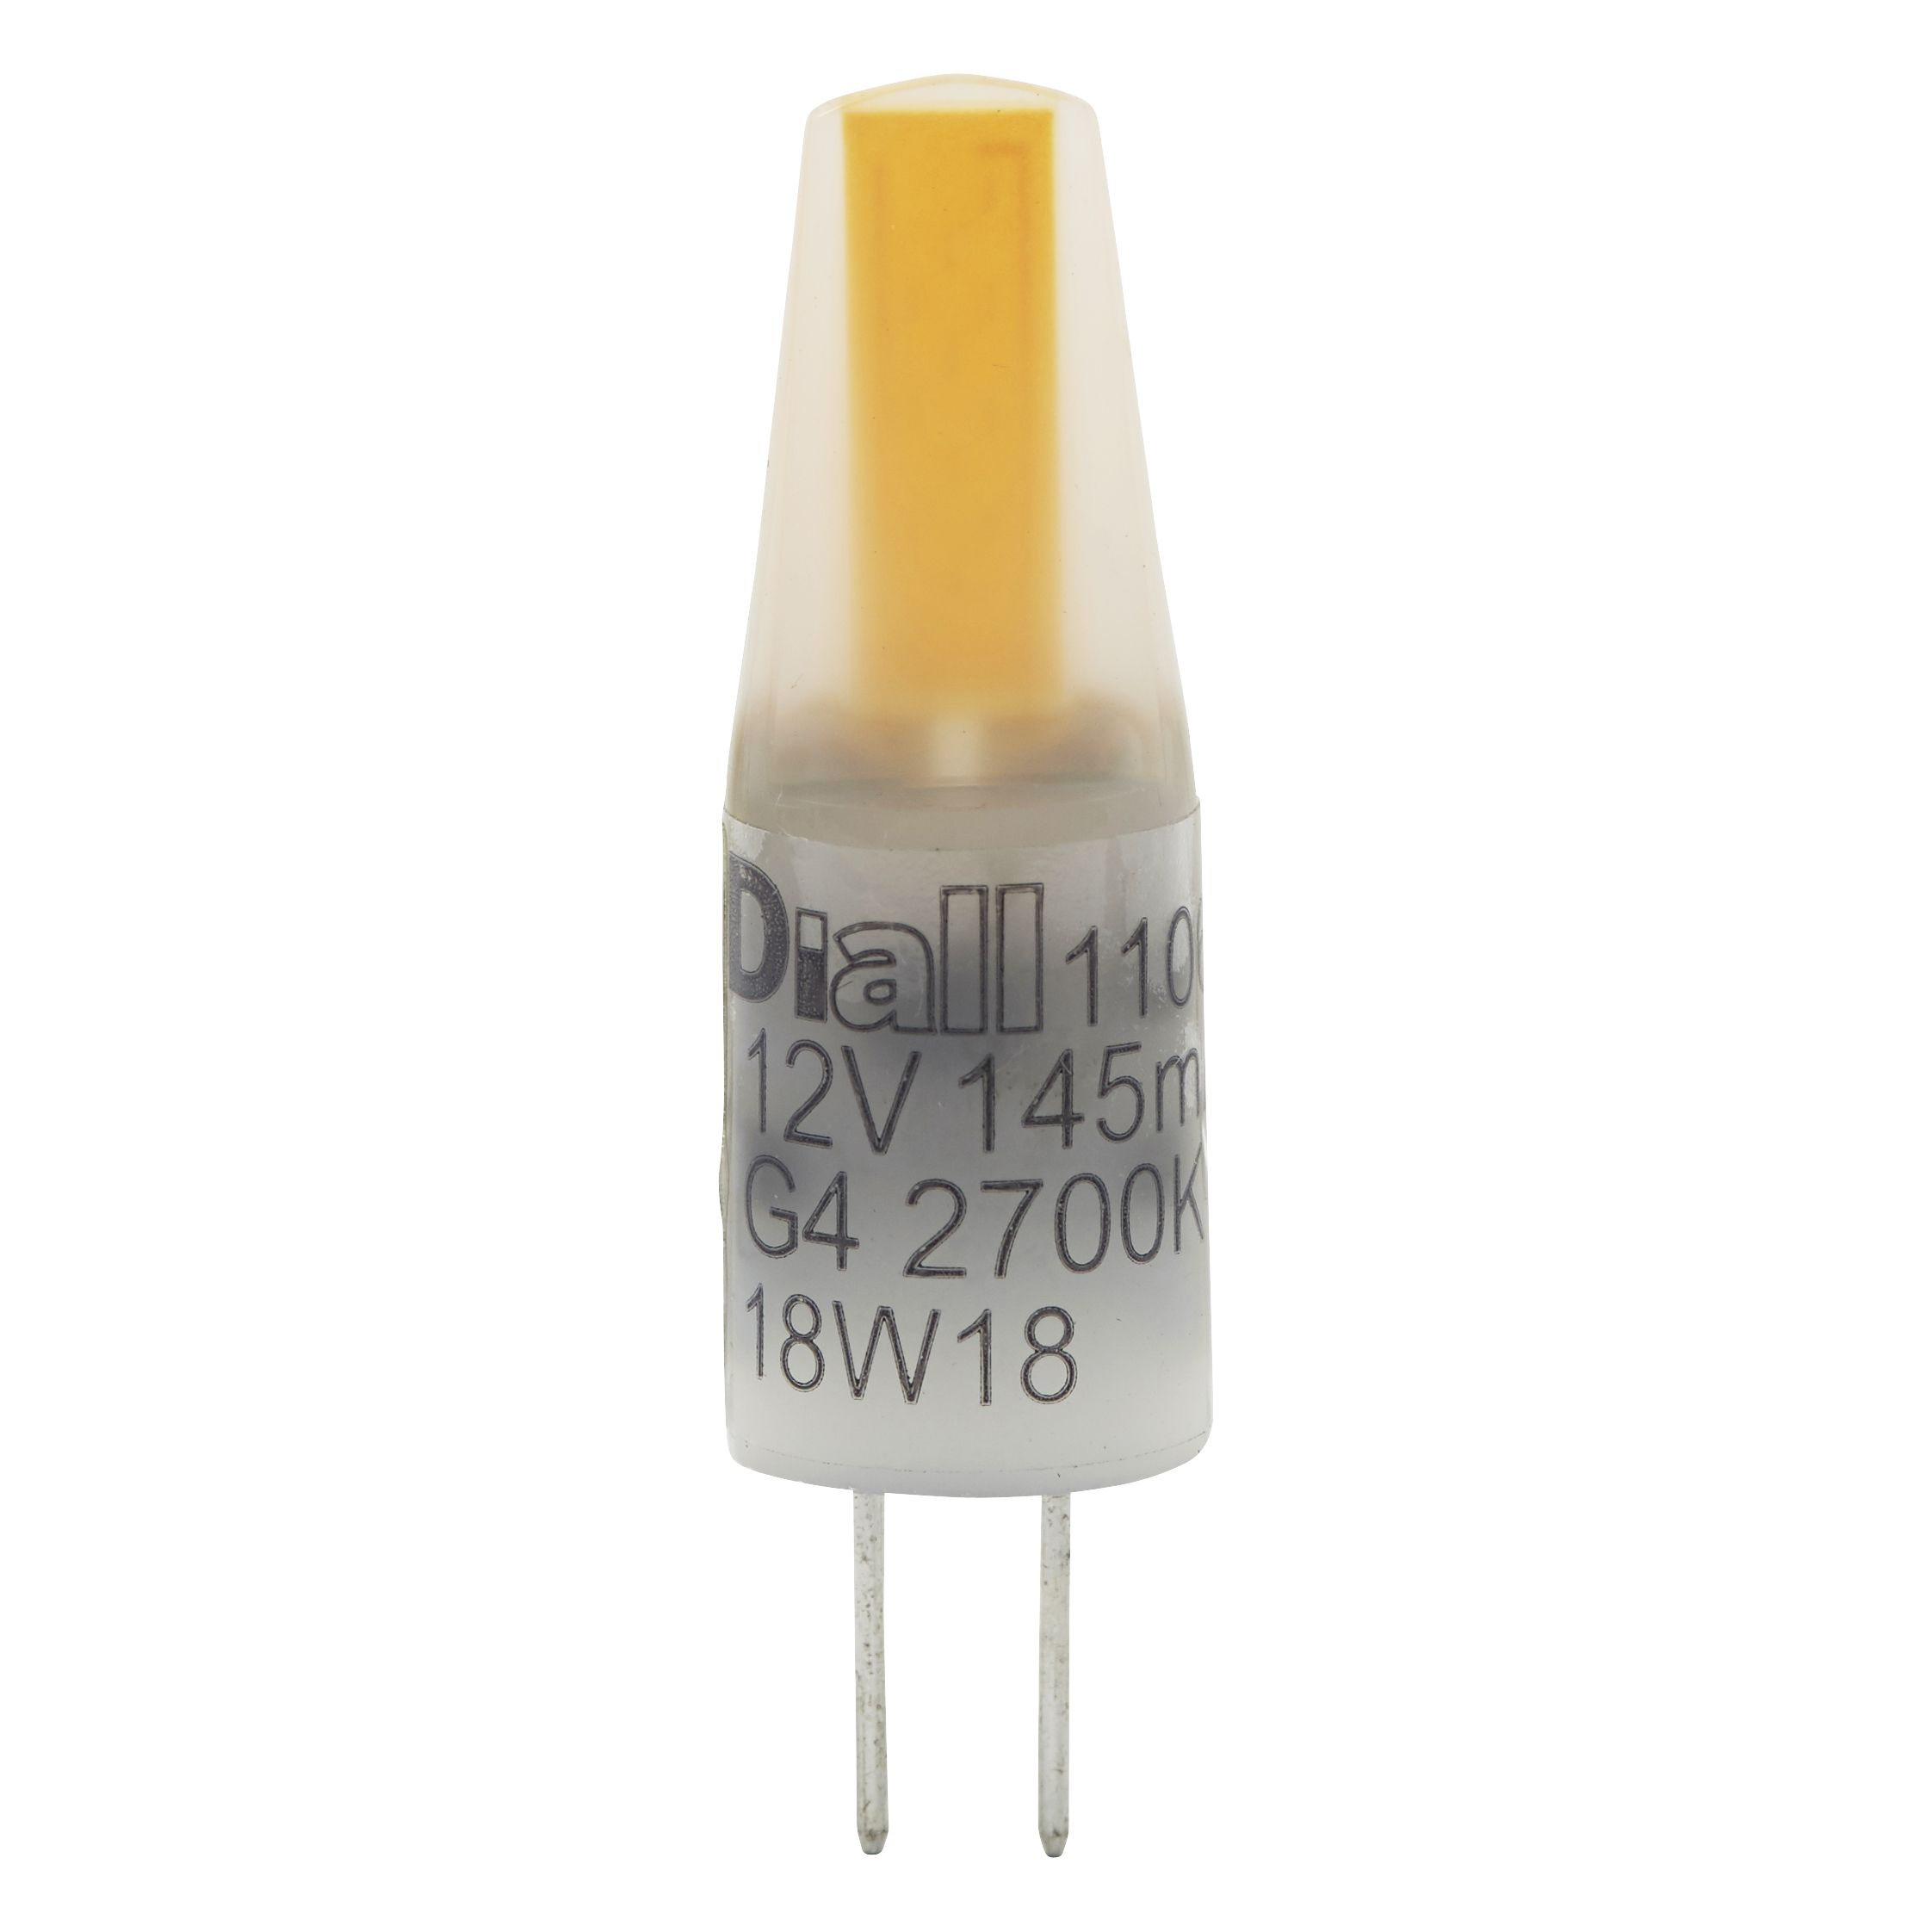 Diall G4 2W 180lm Capsule Warm white LED Light bulb, Pack of 2 |  Departments | DIY at B&Q